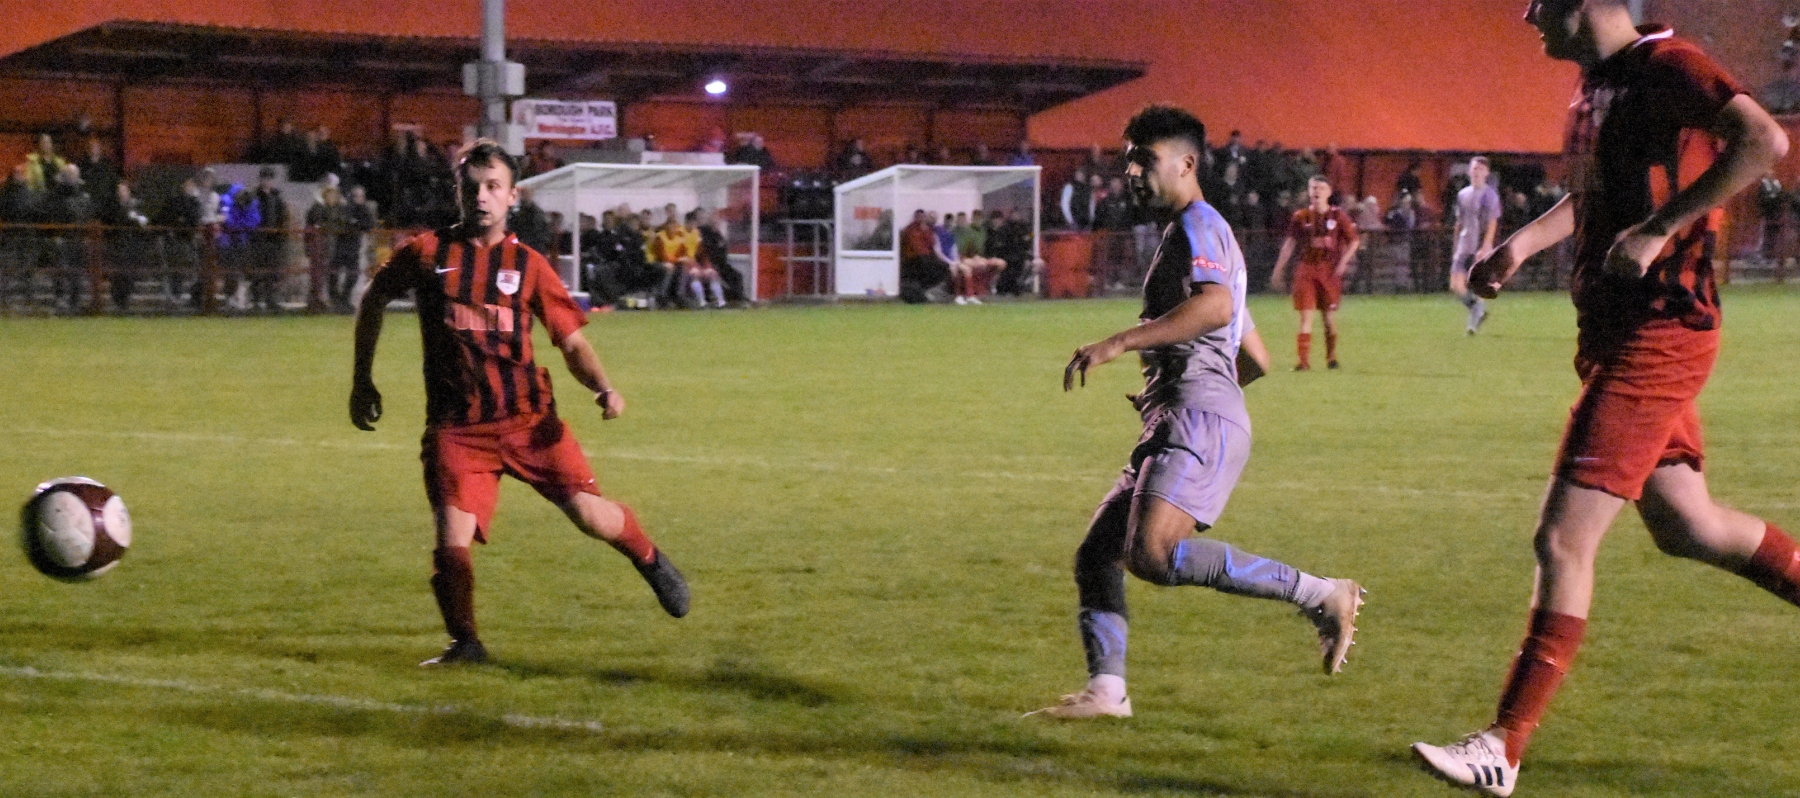 Nathan-Waterston-scores-the-first-of-three-goals-for-the-Reds-Ben-Challis-1